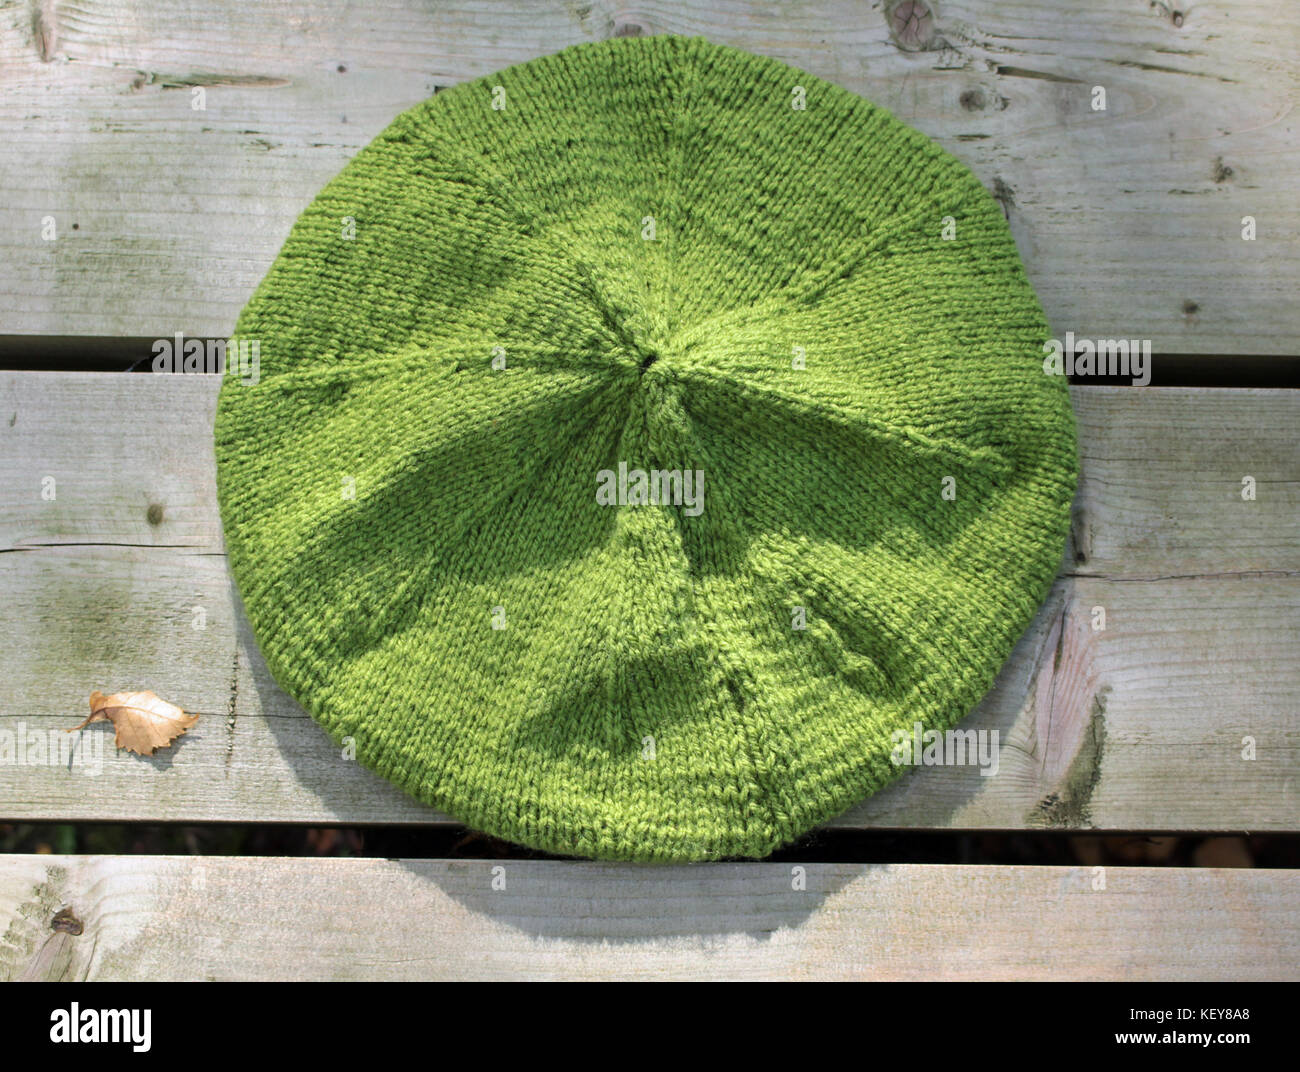 A hand knitted beret on a wooden table. It is a adult sized garment in a sage green shade. - Stock Image